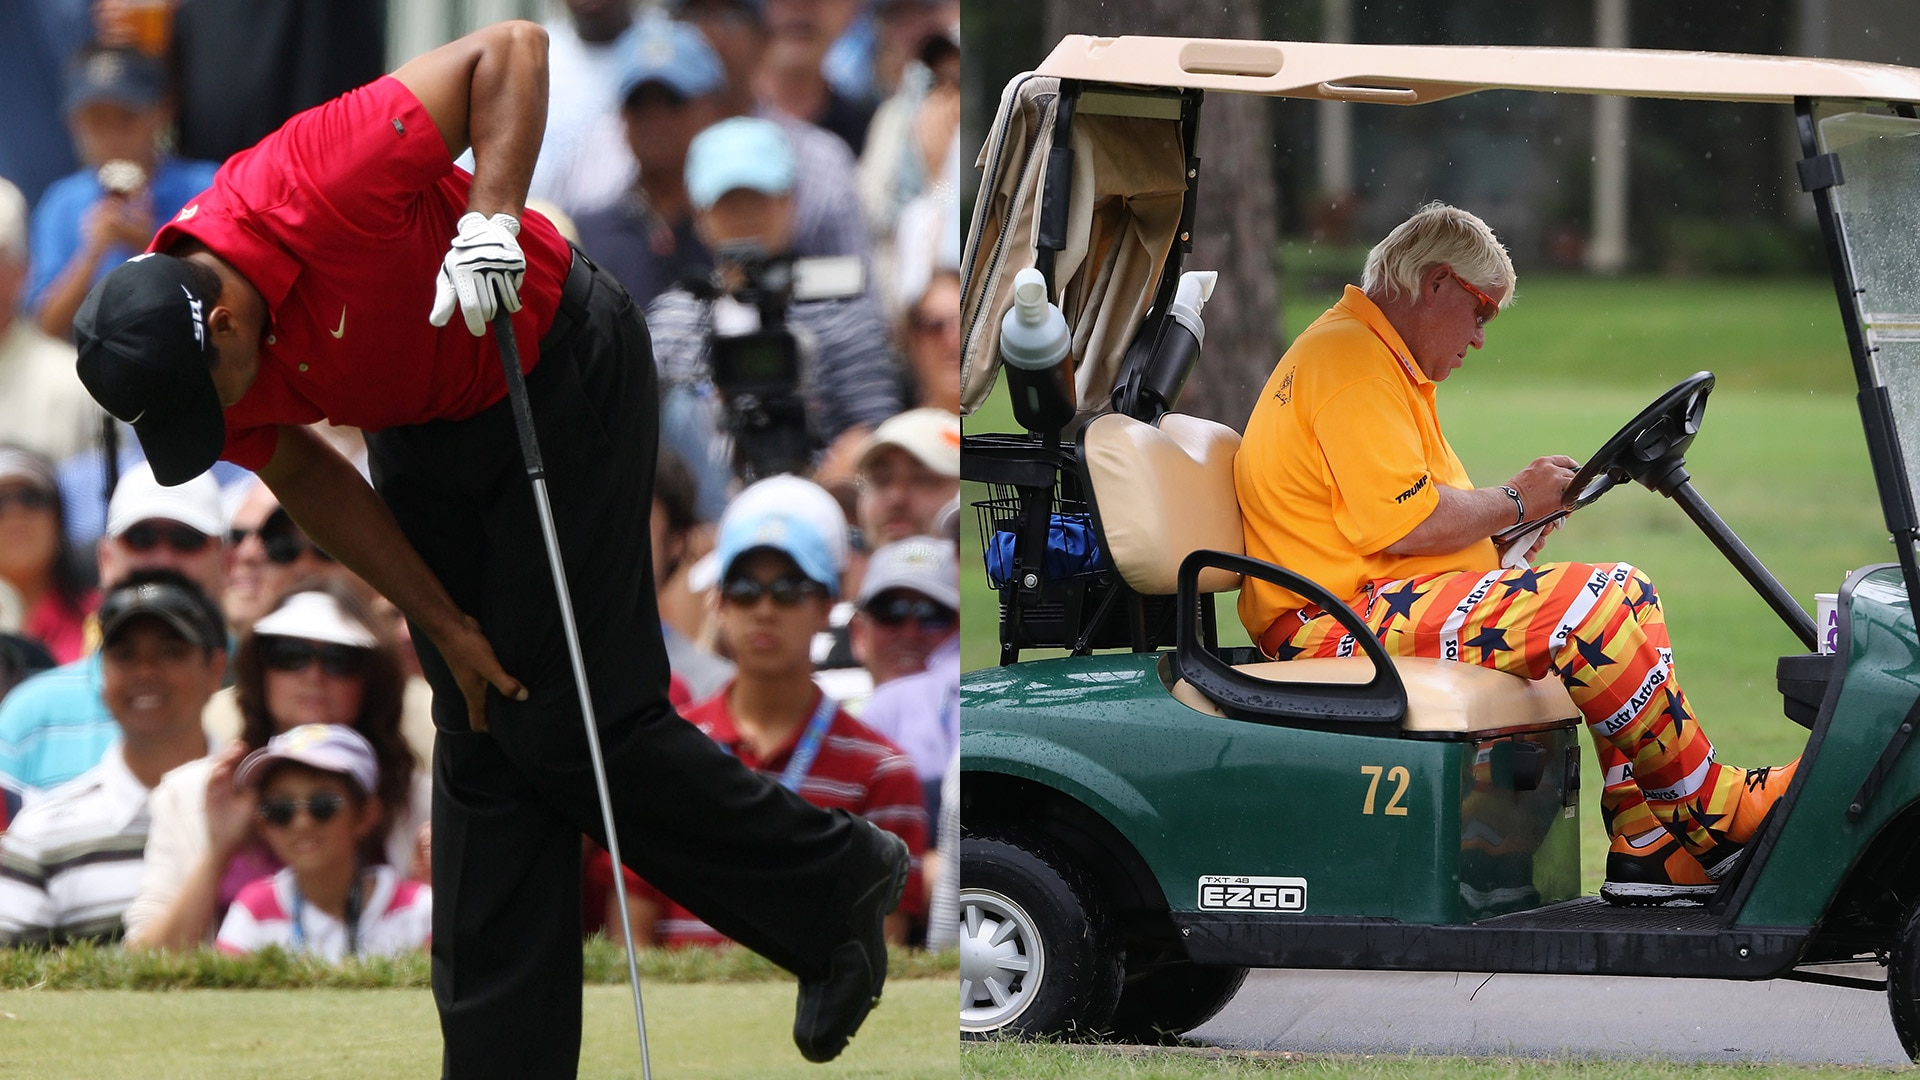 f6a8d885c281c Tiger Woods on John Daly s riding in a cart at the 2019 PGA ...